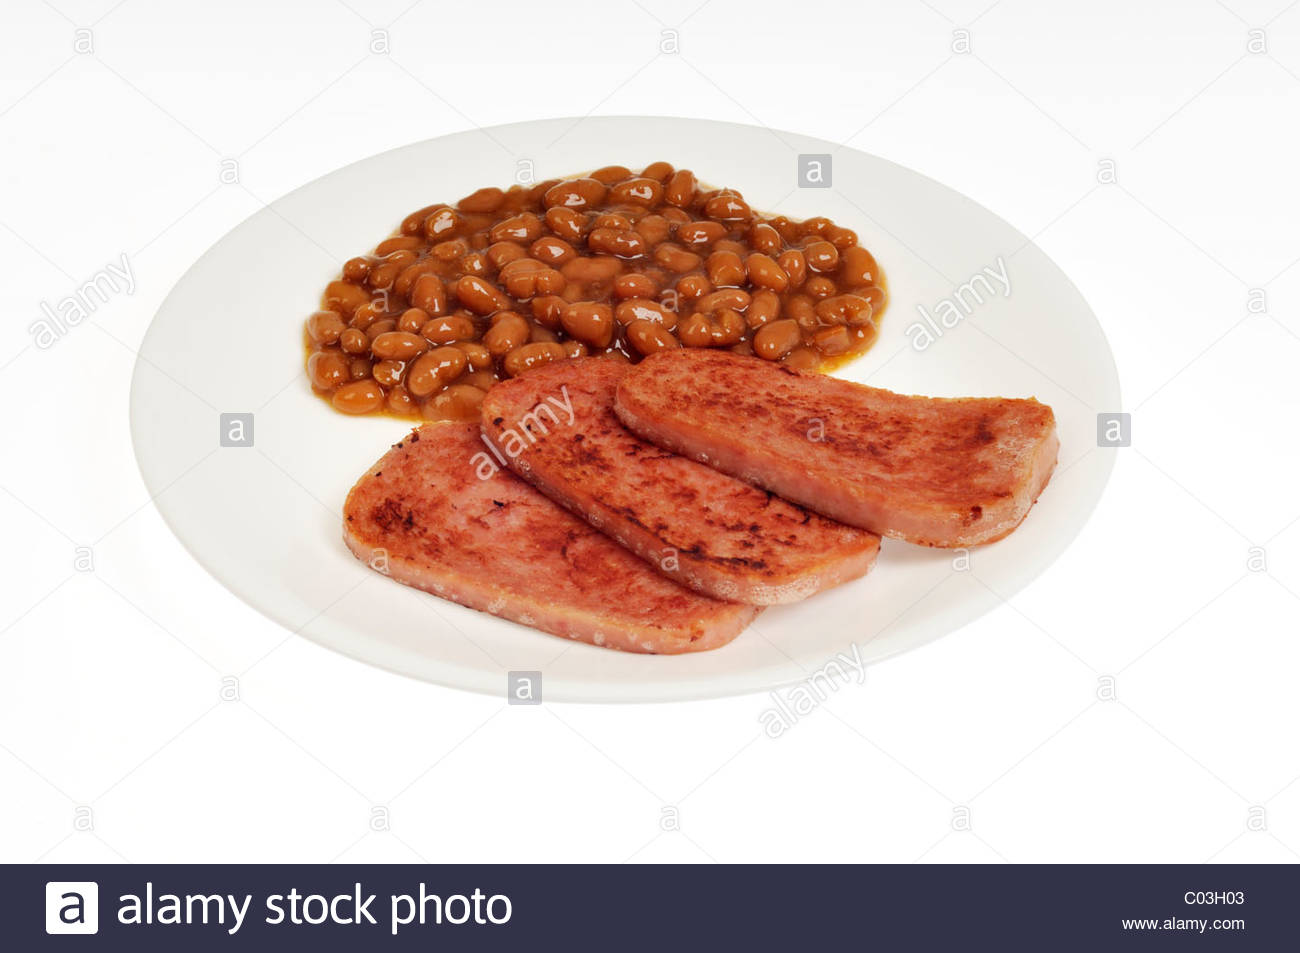 Cooked grilled Hormel spam with pork and beans on white plate with 1300x953